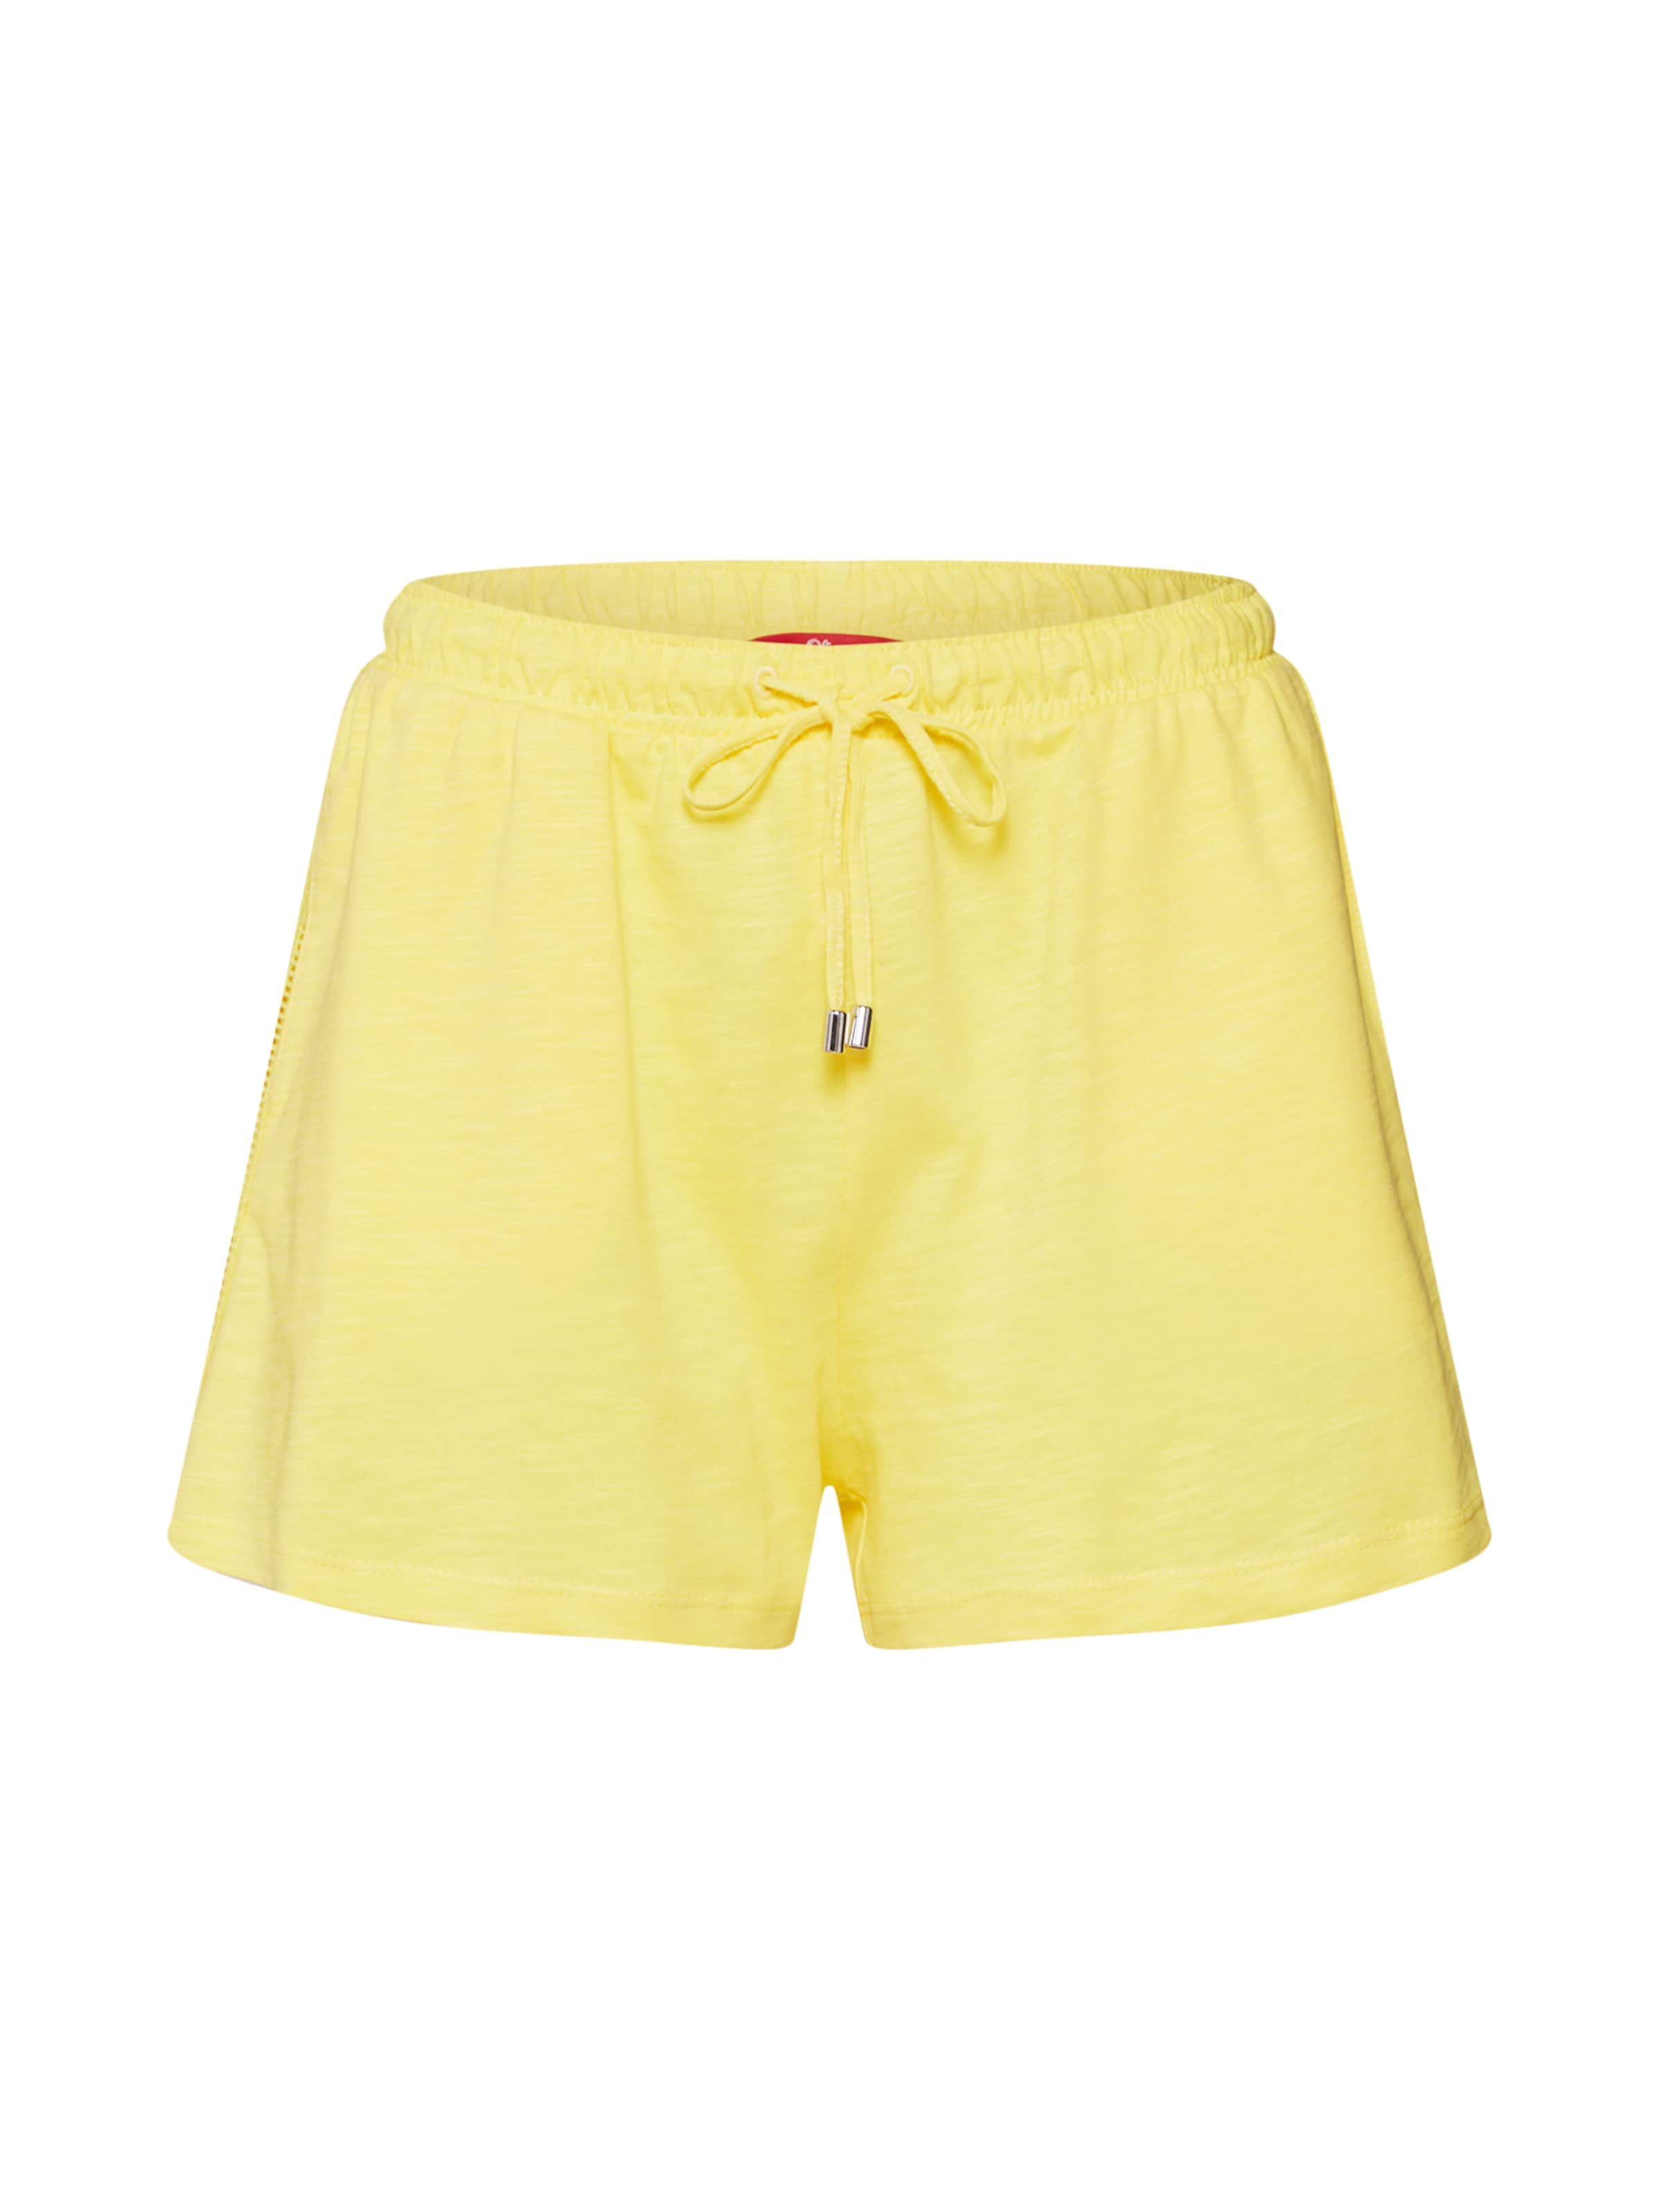 En Red Label S oliver Pantalon Jaune nN0mwOv8